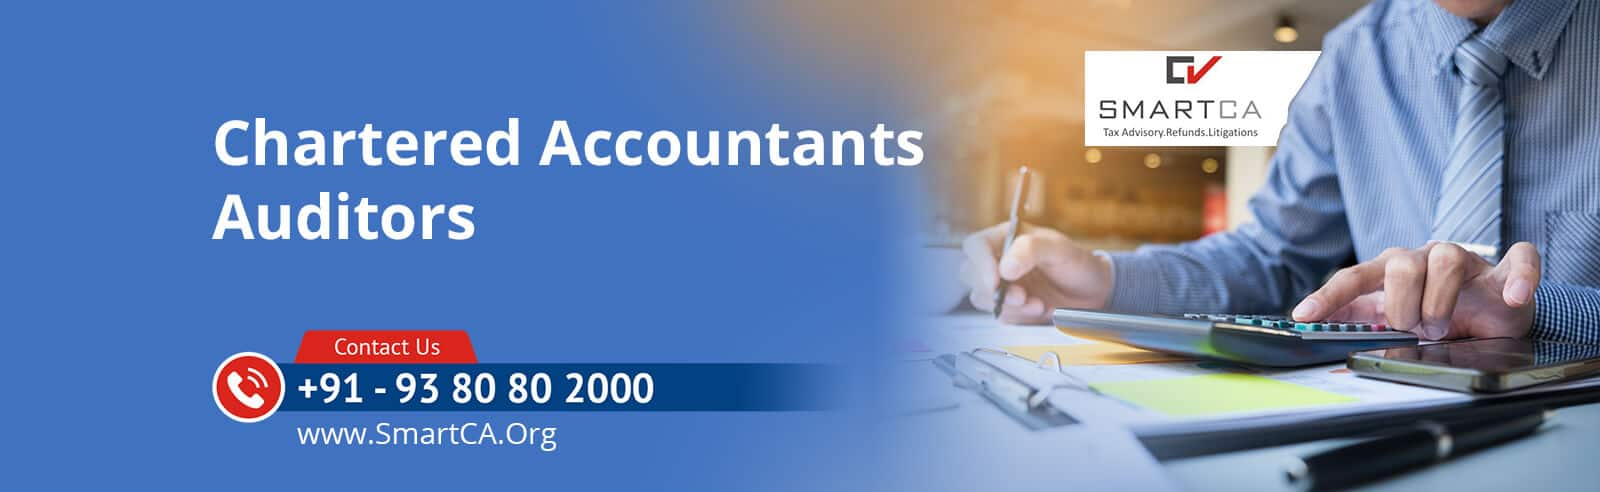 Auditors in Chennai Saidapet